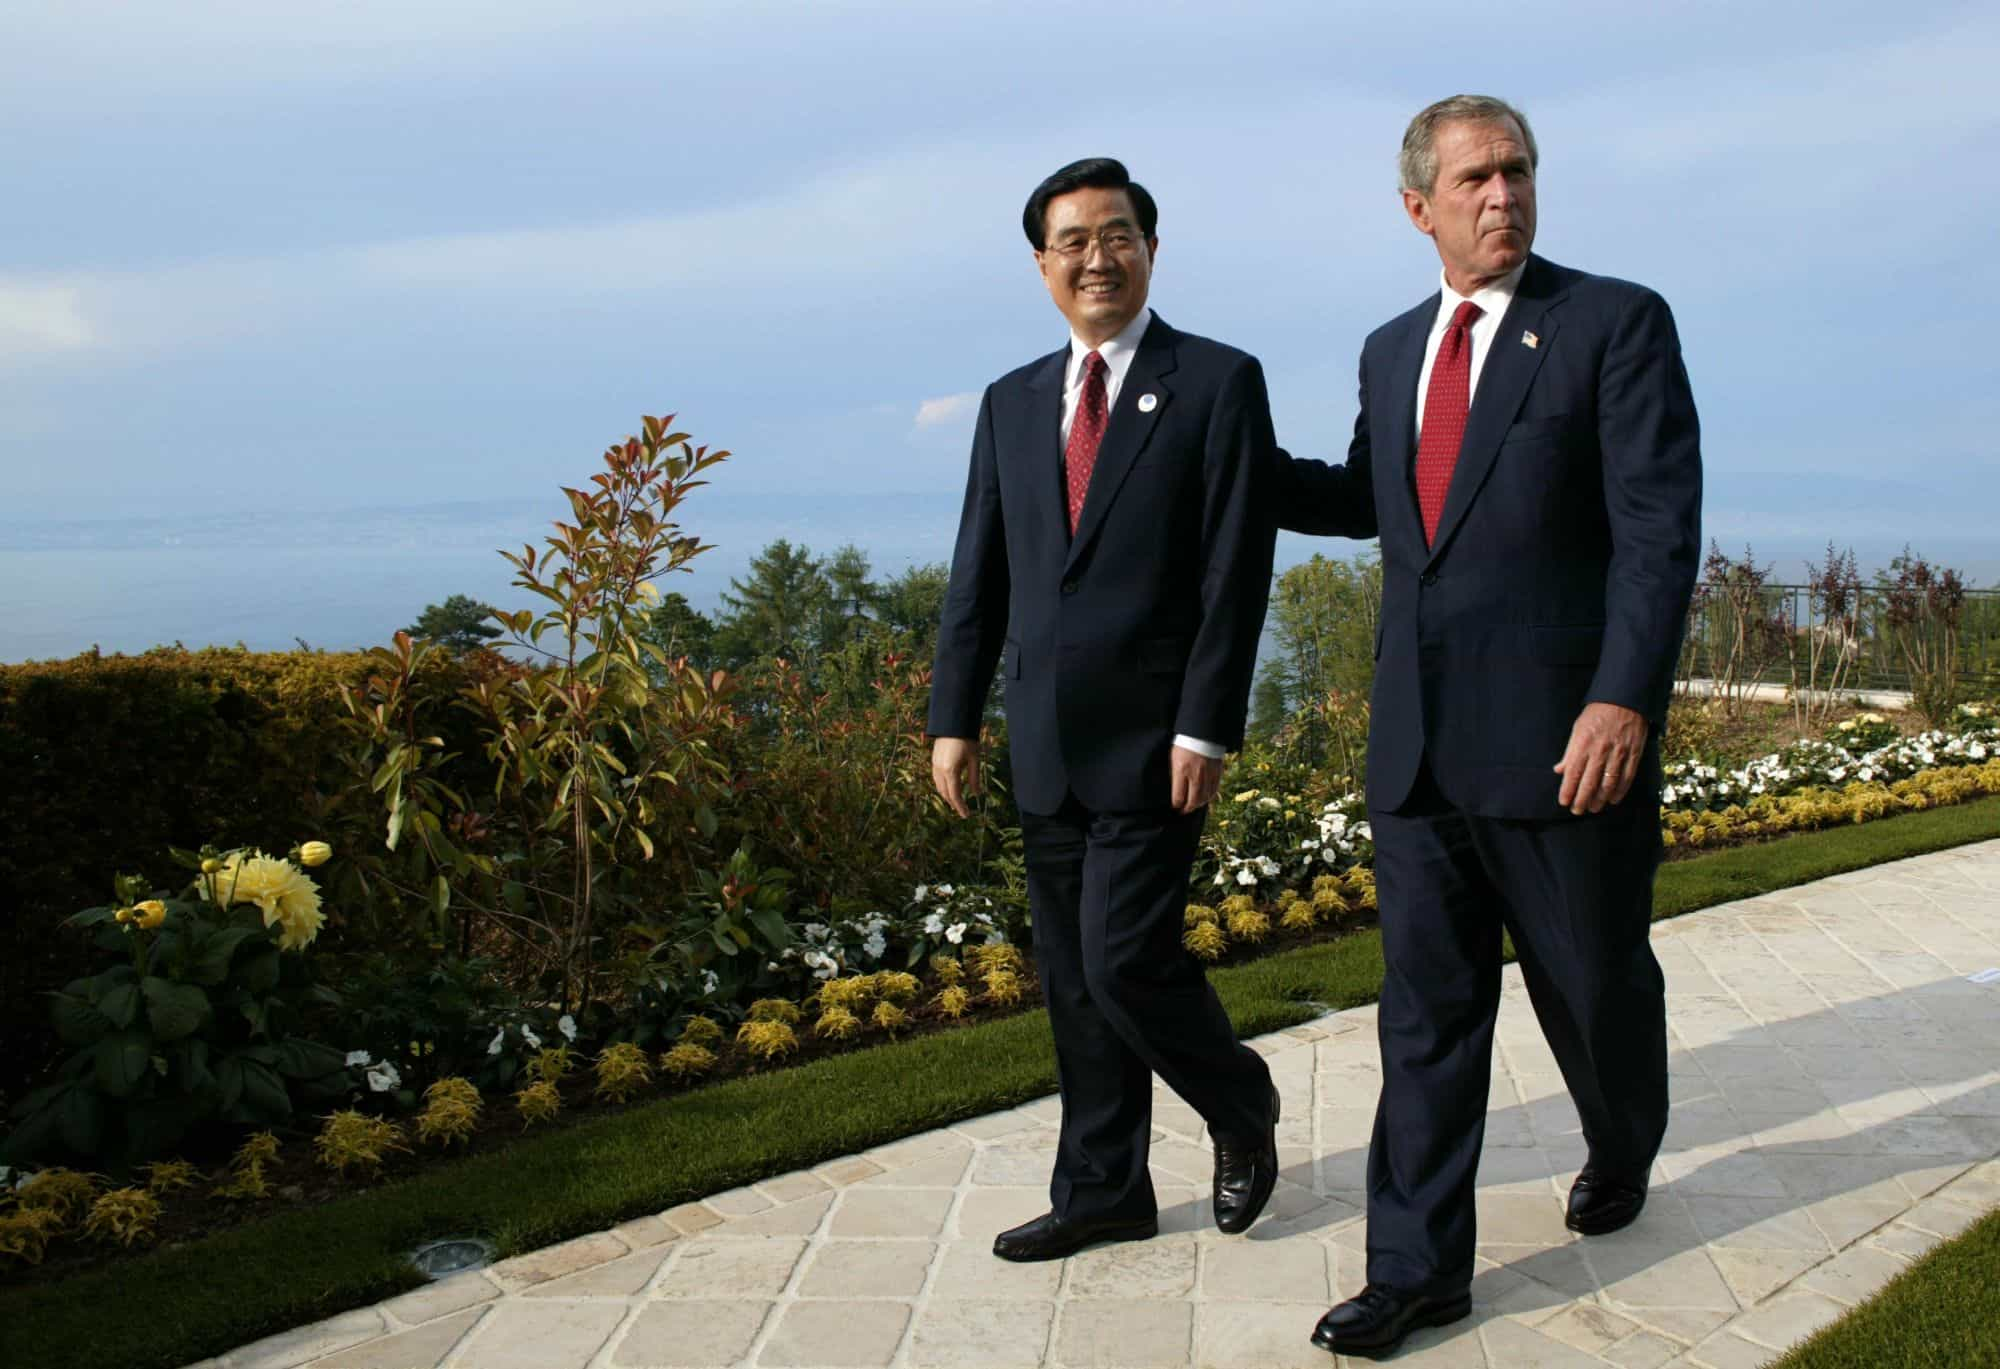 Chinese President Hu Jintao walks with U.S. President George W. Bush at a Group of Eight (G8) summit, in France, in 2003.